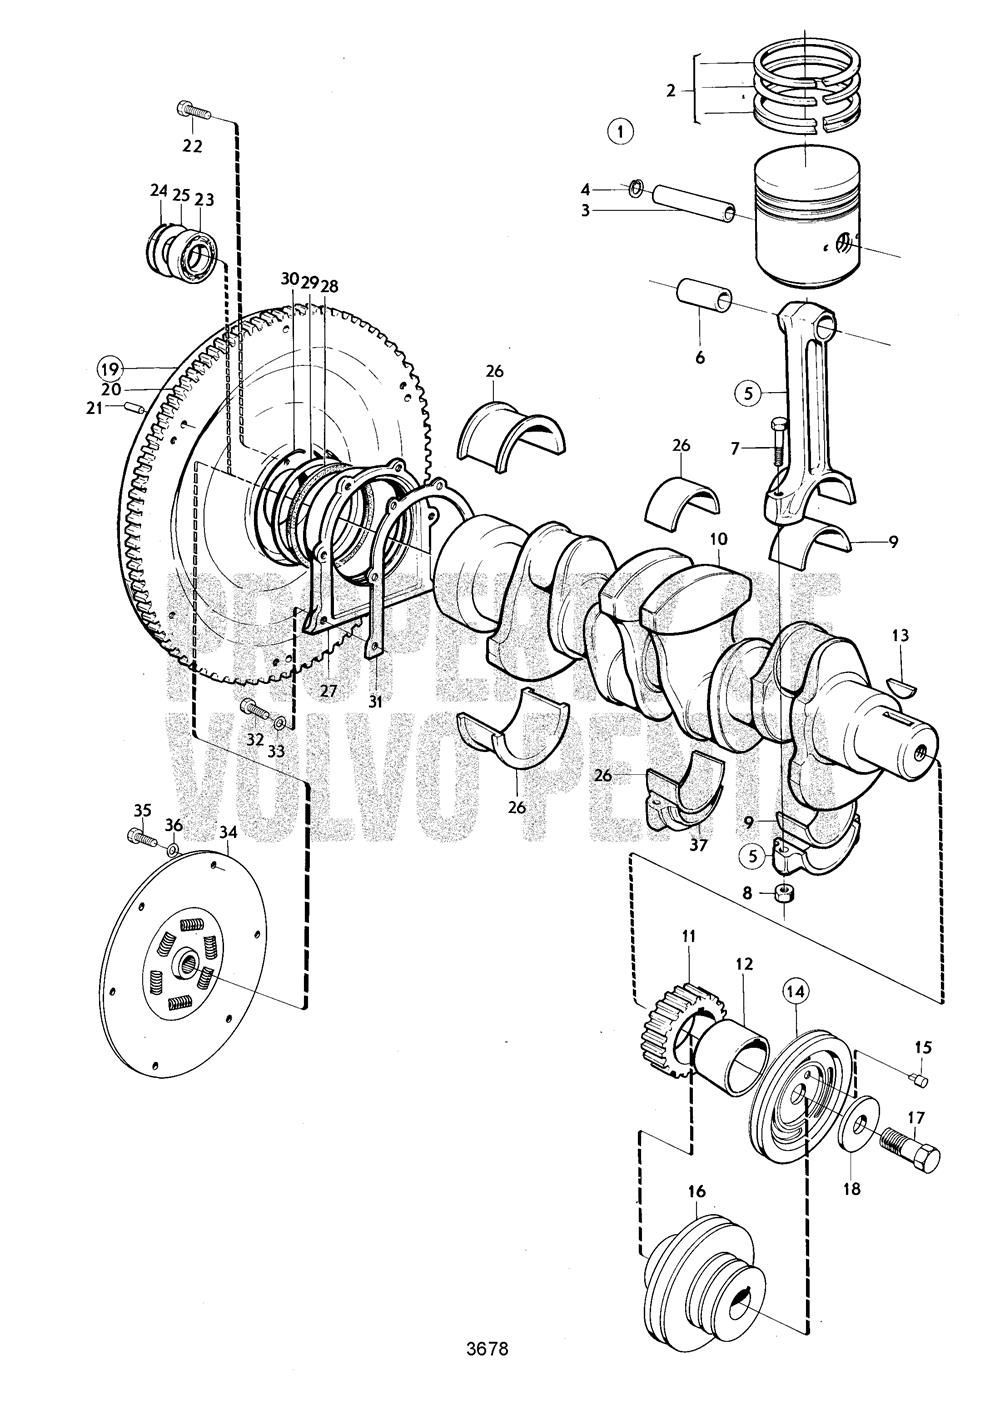 watch parts diagram group picture image by tag keywordpictures pt cruiser engine diagram group picture image by tag [ 1000 x 1415 Pixel ]